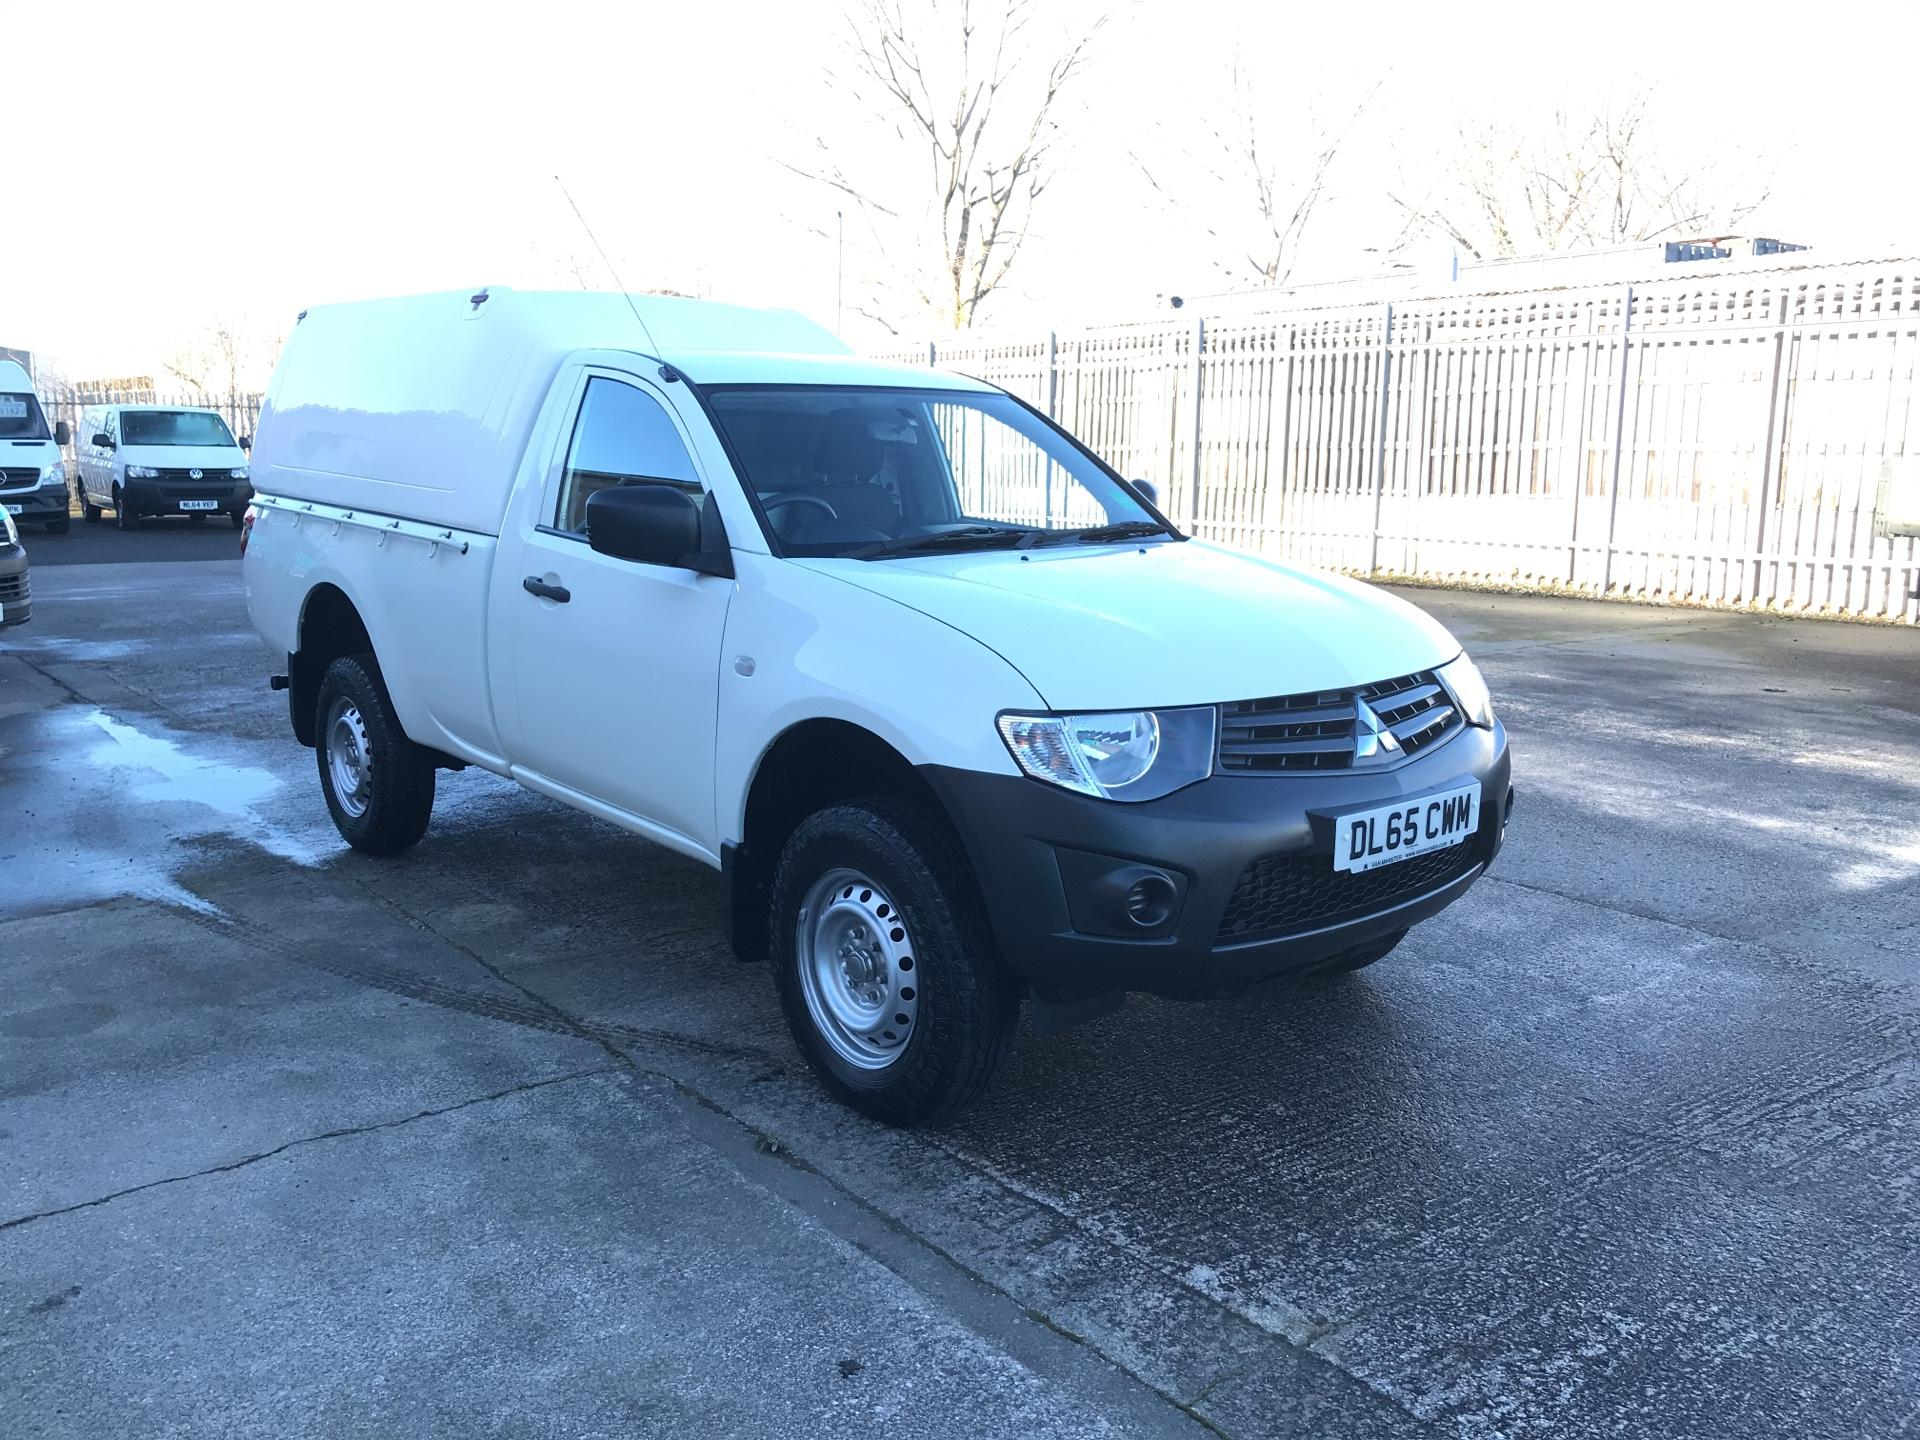 2015 Mitsubishi L200 4LIFE 4X4 SINGLE CAB 134PS EURO 5 (DL65CWM)